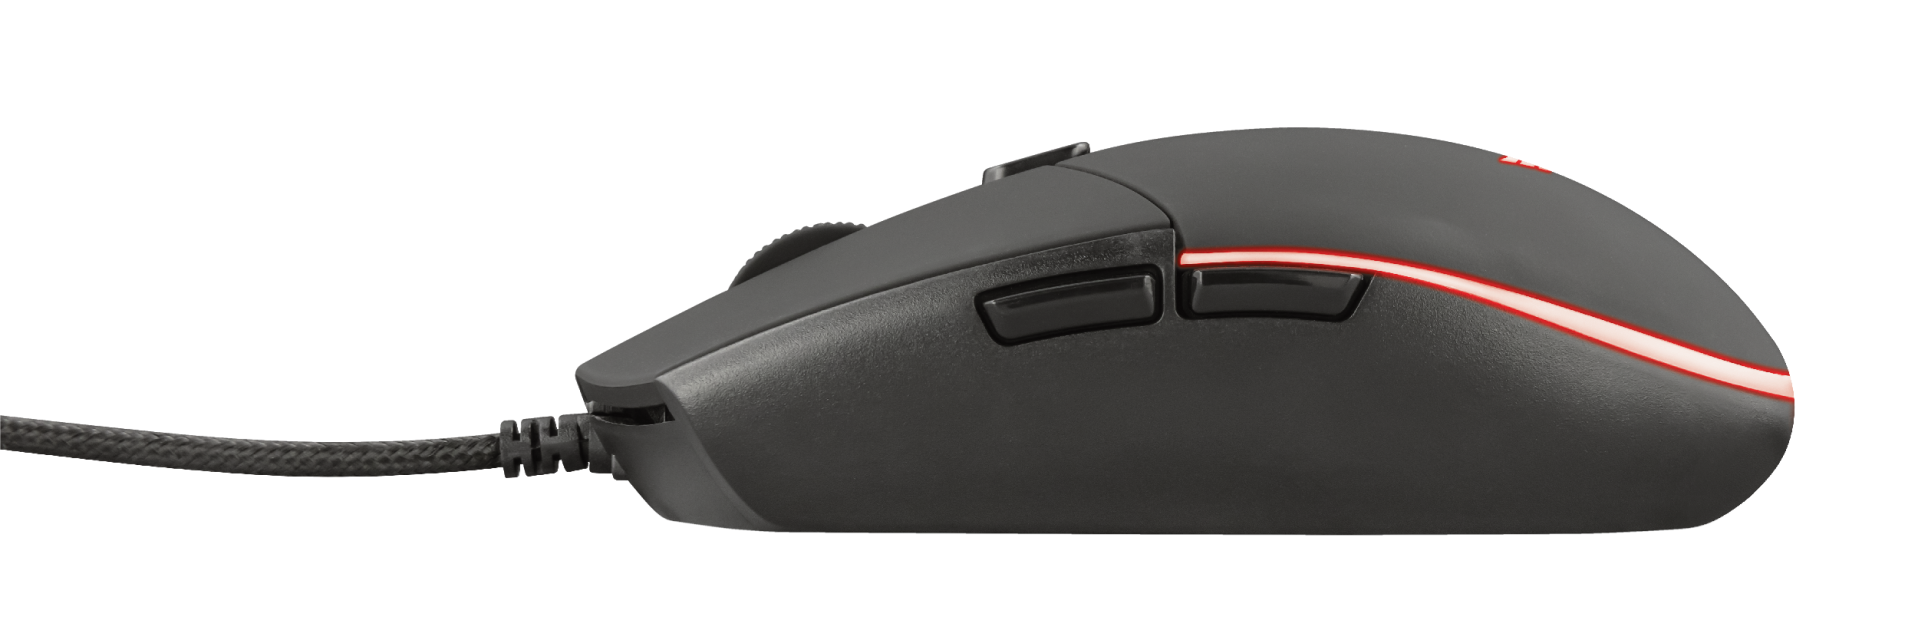 GXT 838 Azor Keyboard and Mouse Set-Side